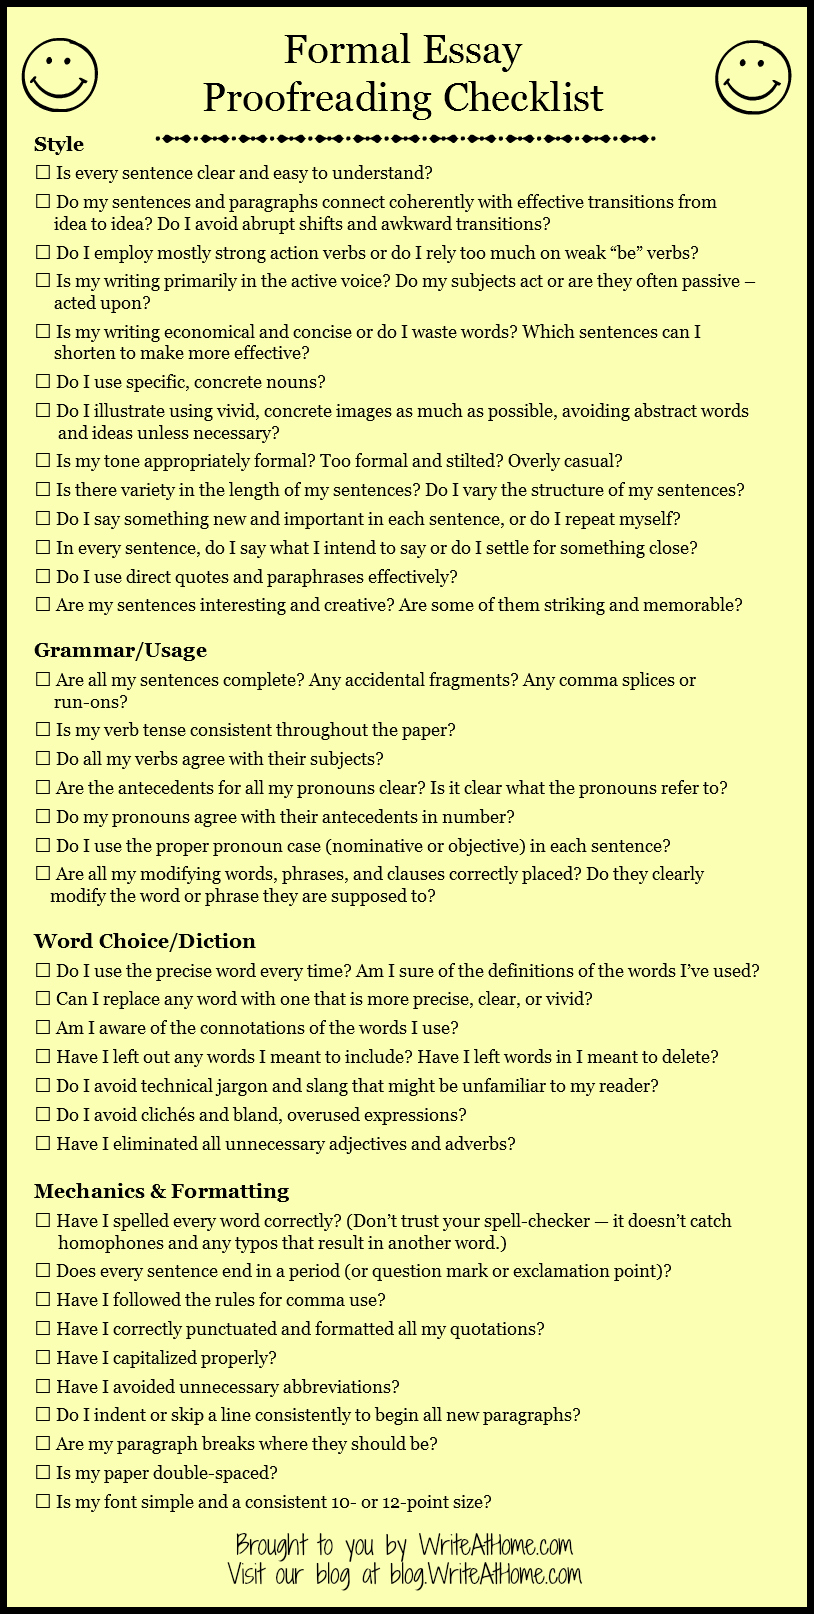 essay mechanics checklist - personal essay checklist august 20, 2008 august 20, 2008 / jelizabeth here's a great criteria checklist for the personal essay genre, whether you're writing them or teaching students how to write them.